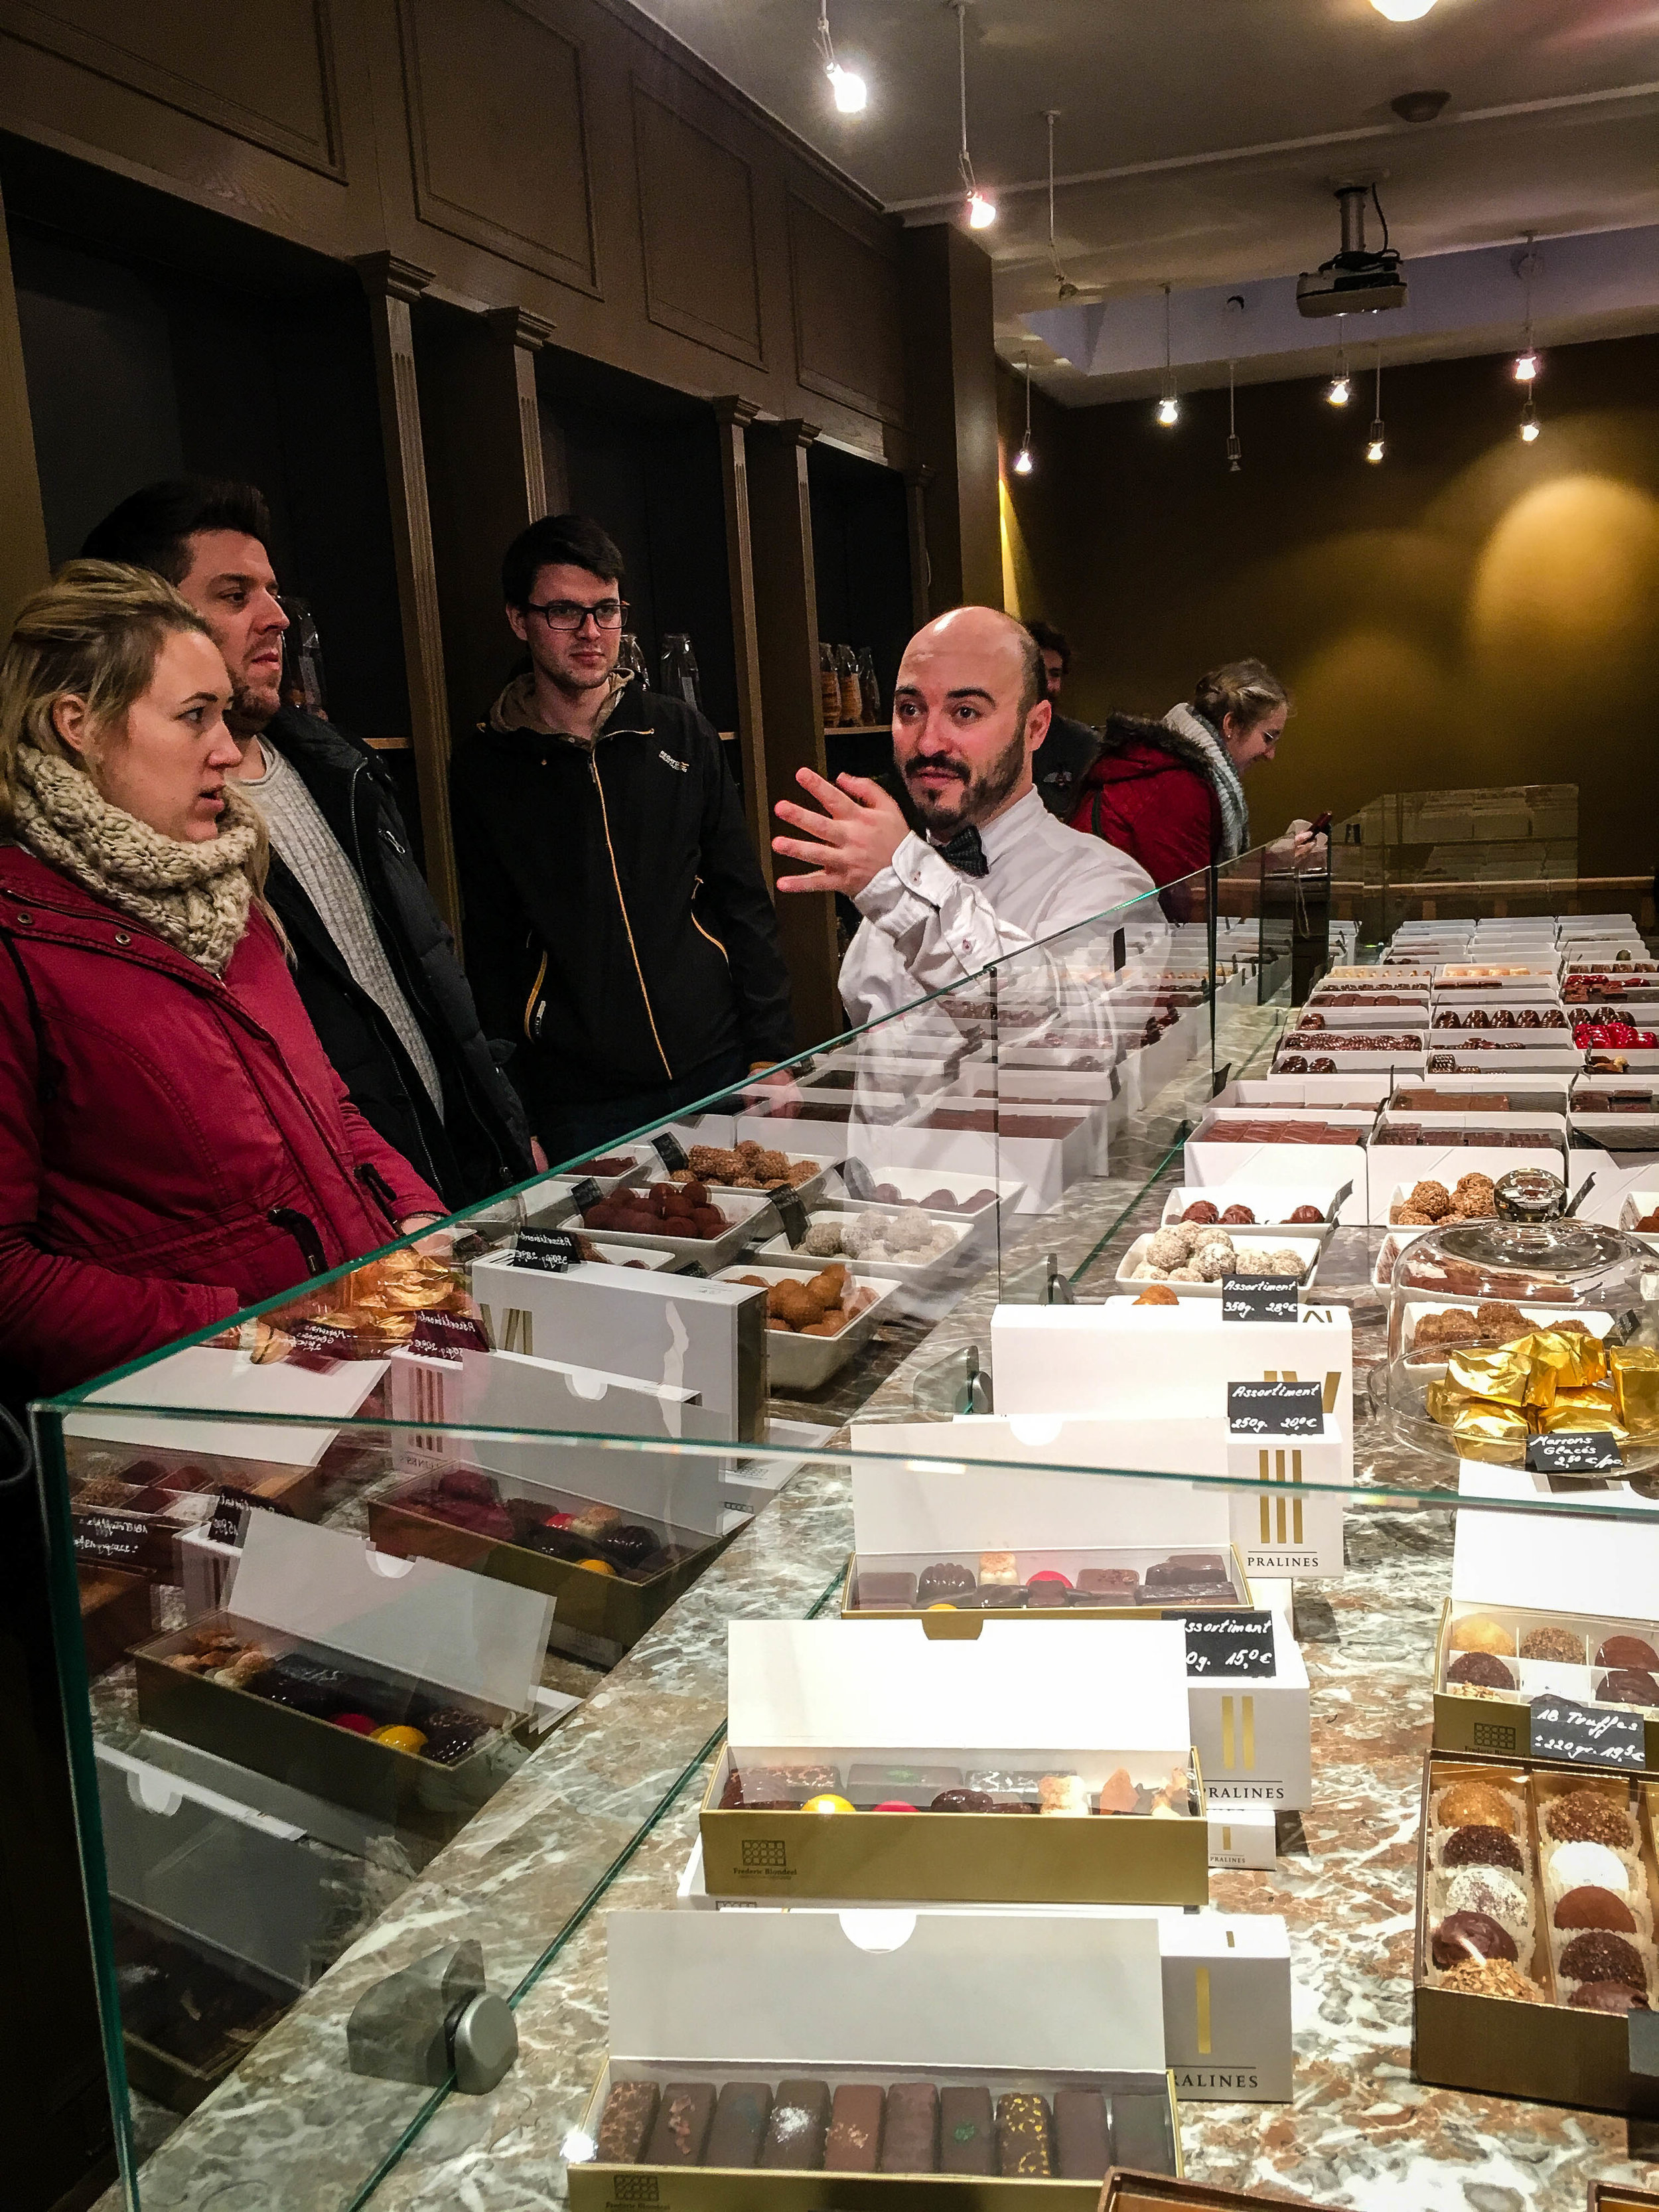 Explanation by the tour guide of the Brussels Journey in our Brussels Beer and Chocolate Tour